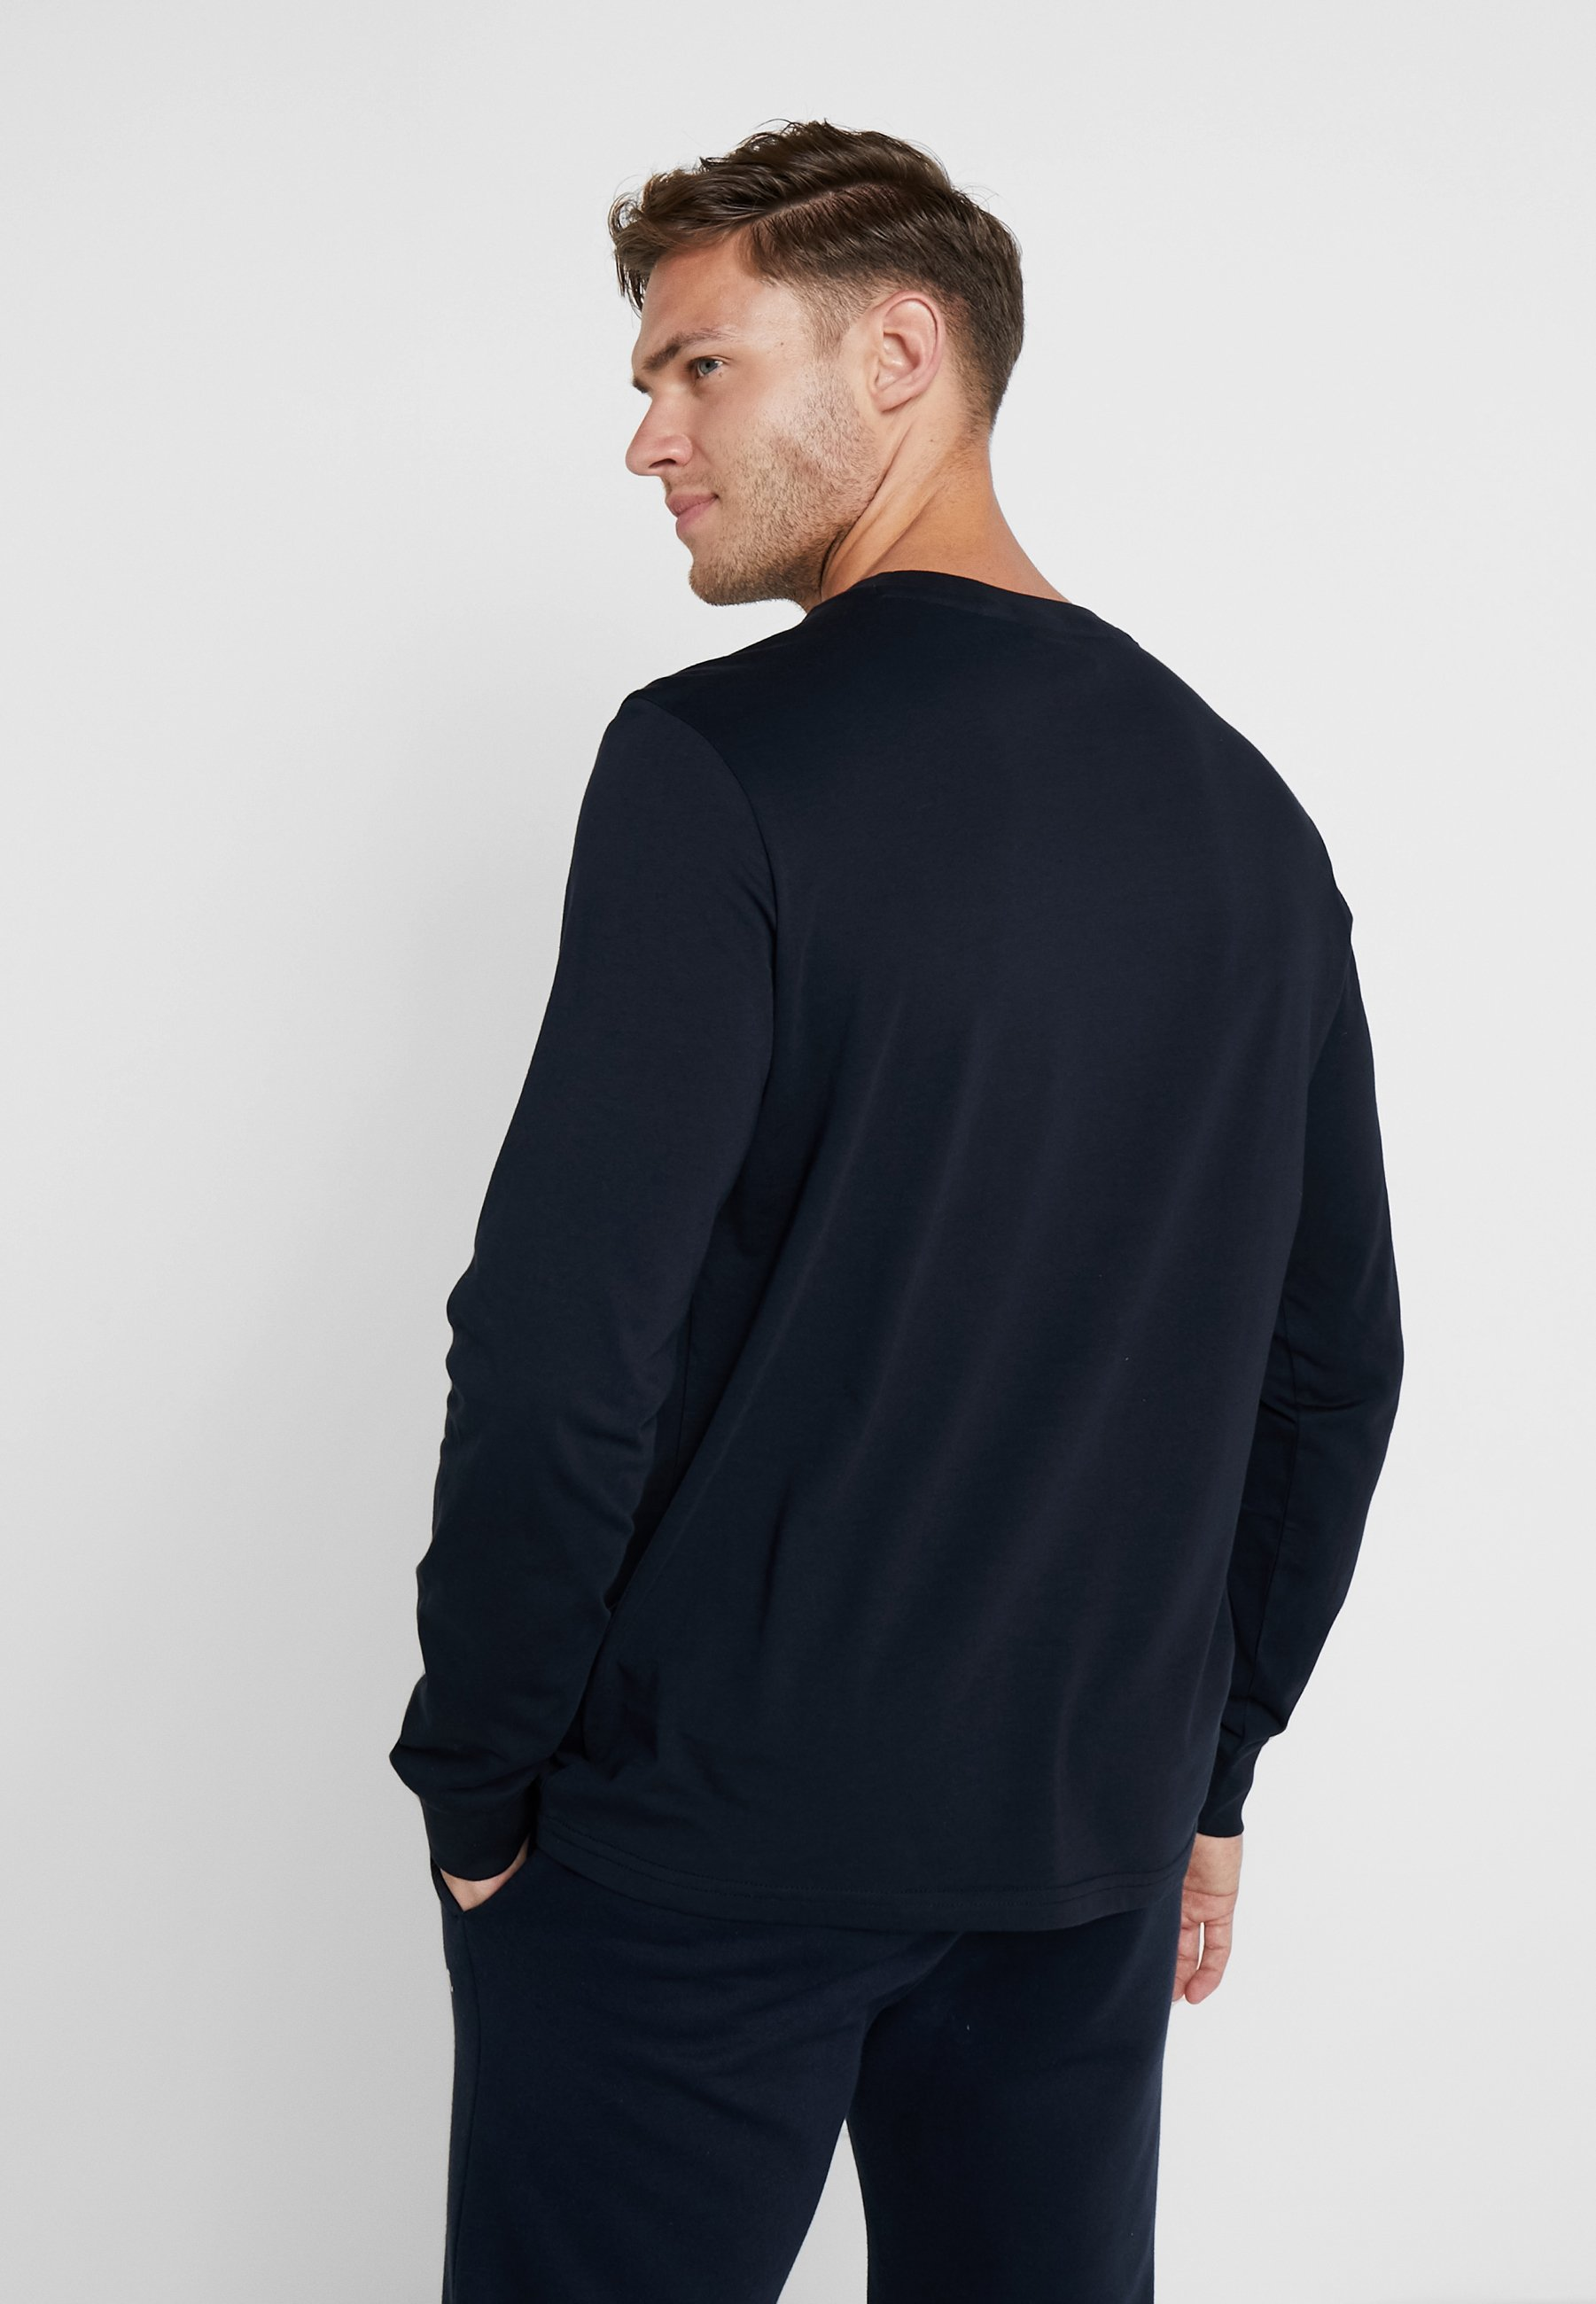 Longues Manches Blue Dark À Champion Long CrewneckT shirt Sleeve 8nwOkX0PN